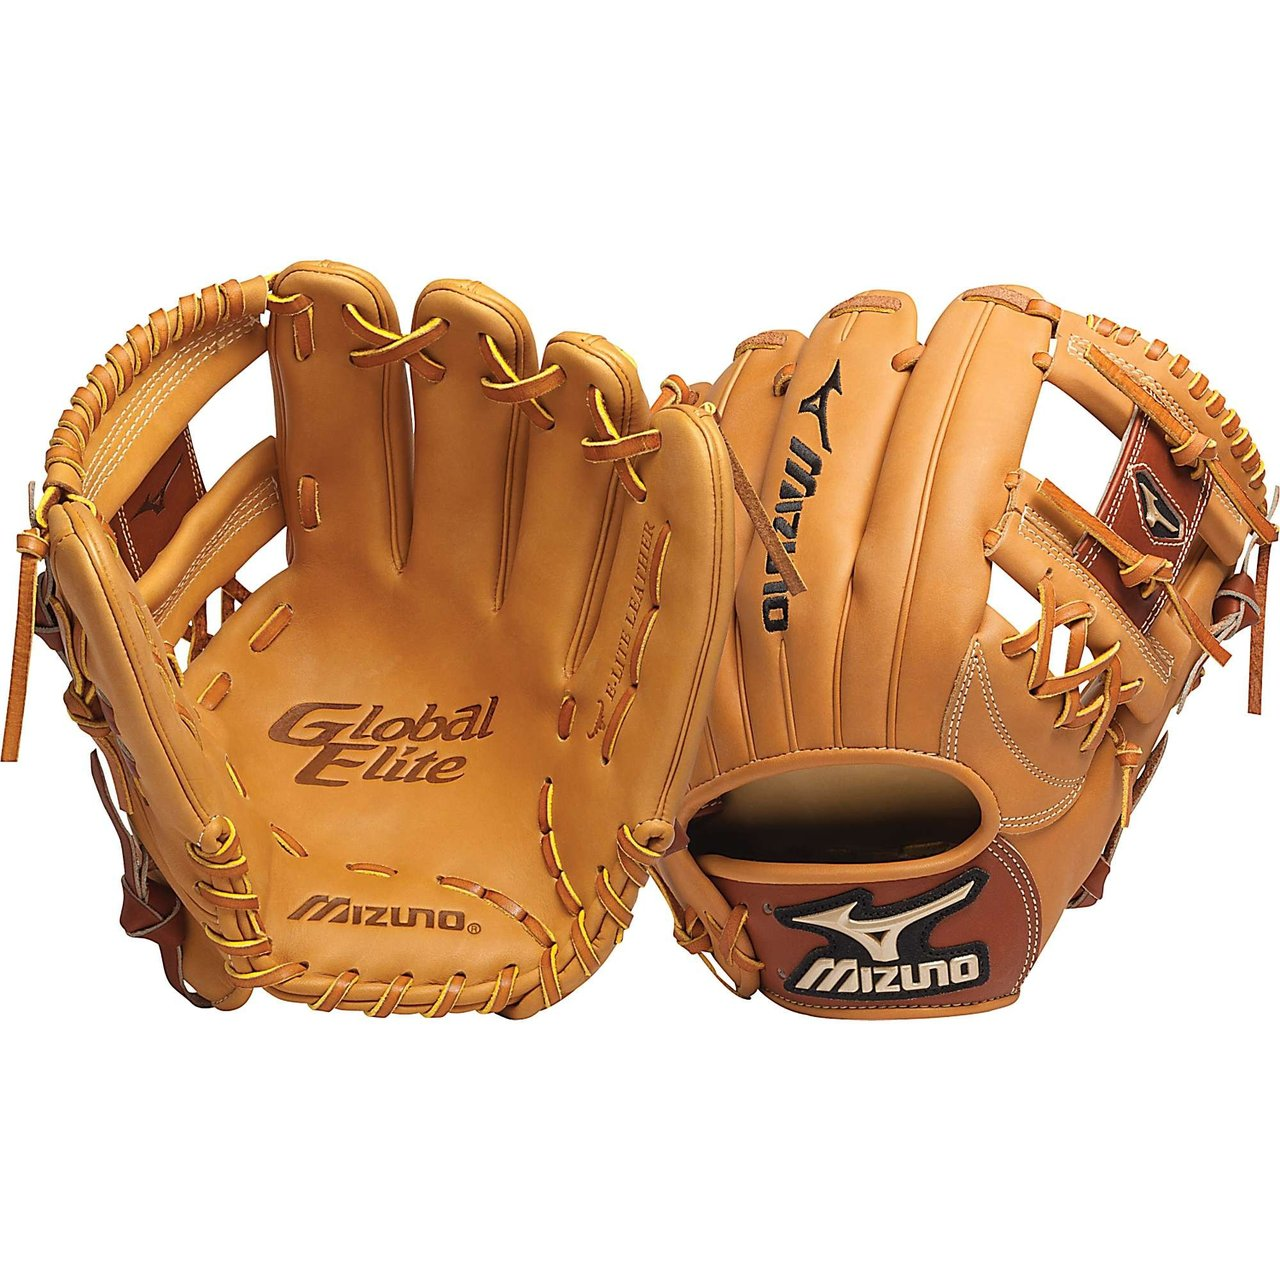 mizuno-gge60-global-elite-11-5-baseball-glove-right-handed-throw GGE60-Right Handed Throw Mizuno 041969366929 E-Lite Leather - Soft and light for the ultimate in performance.Counter